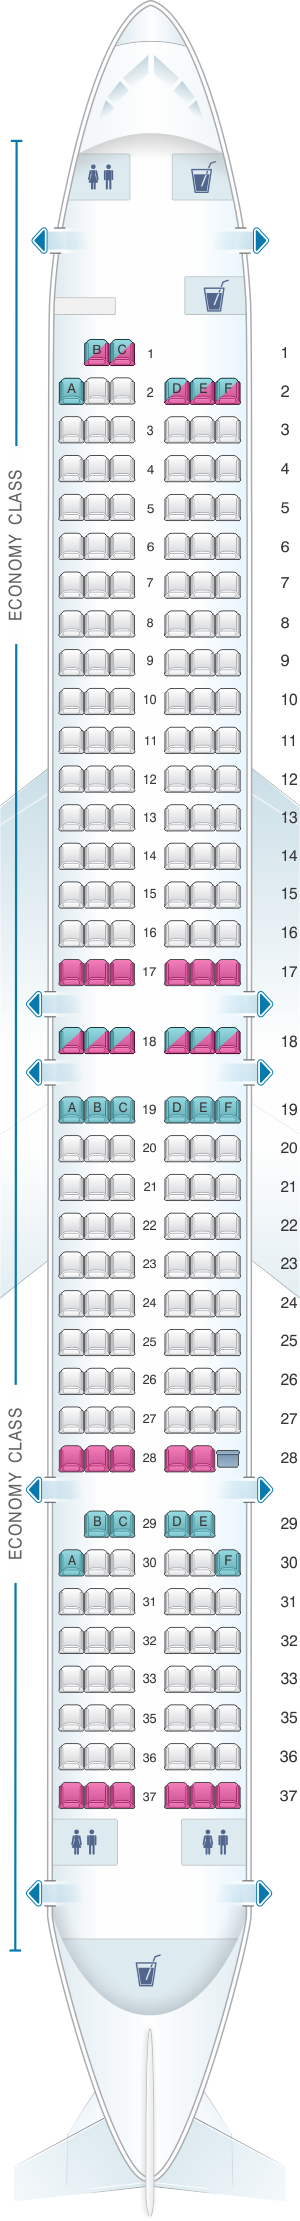 Seat map for Lion Air Boeing B737 900ER